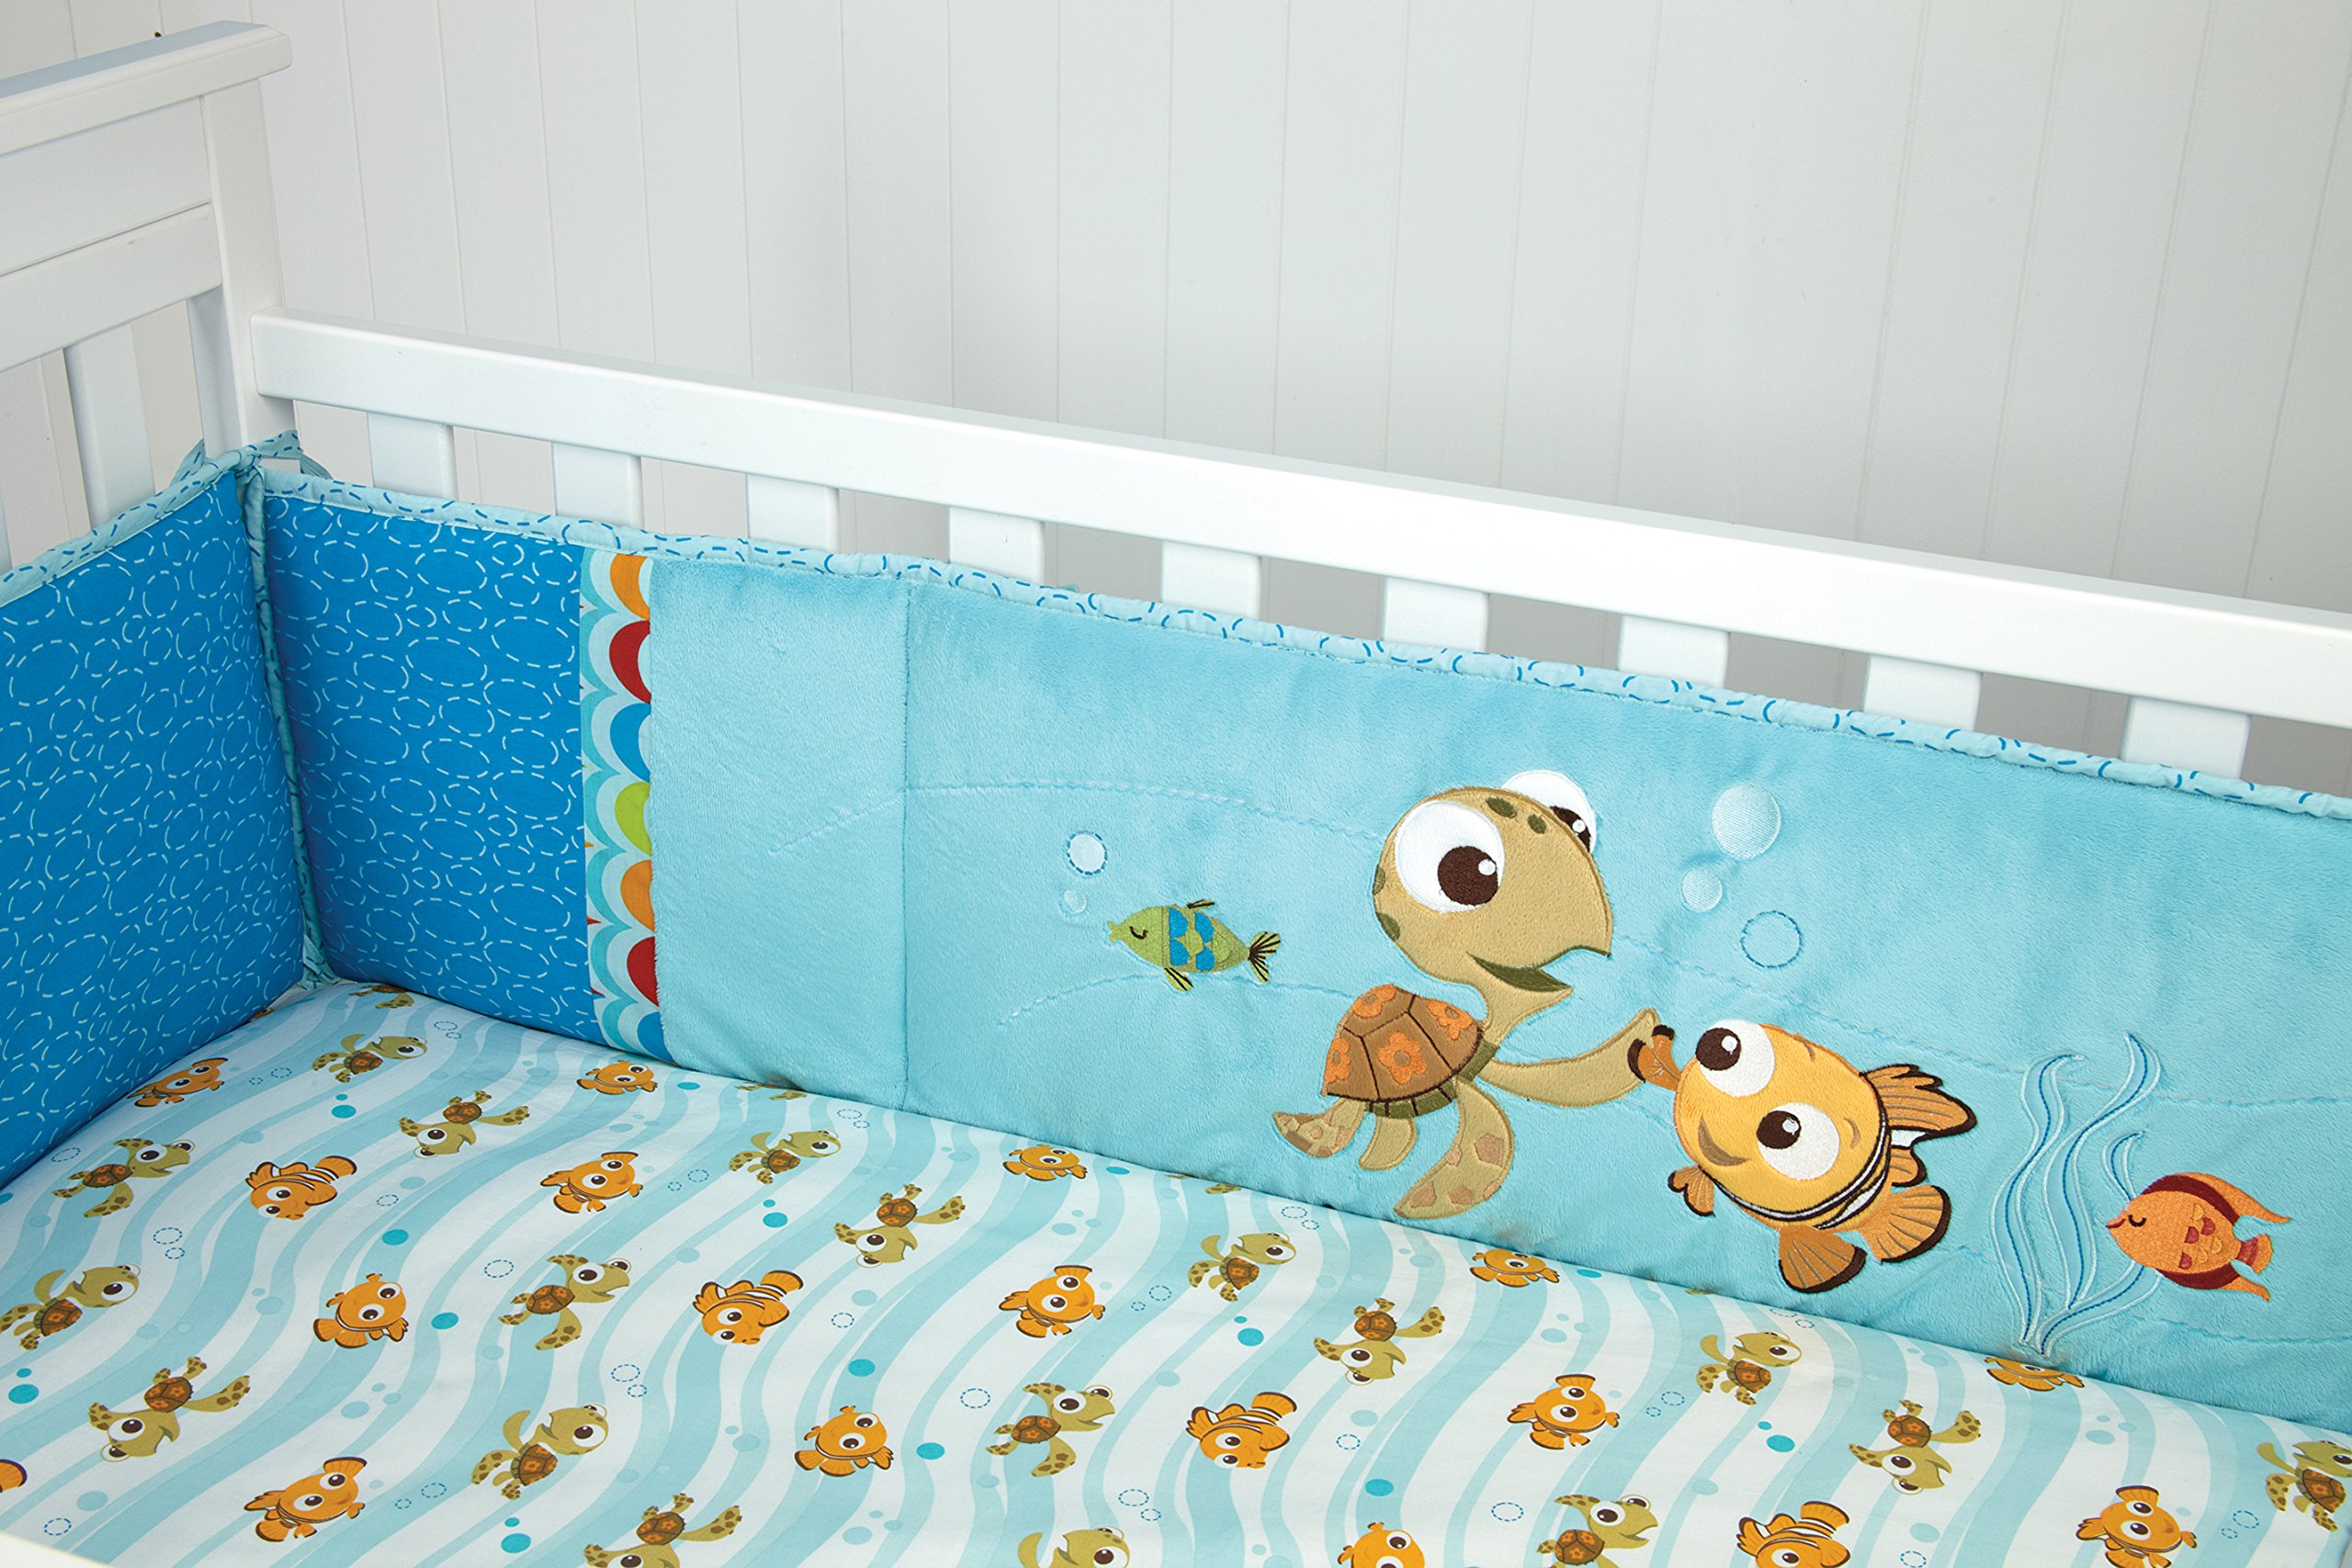 New Disney Finding Nemo 8 Piece Crib Bedding Set Limited